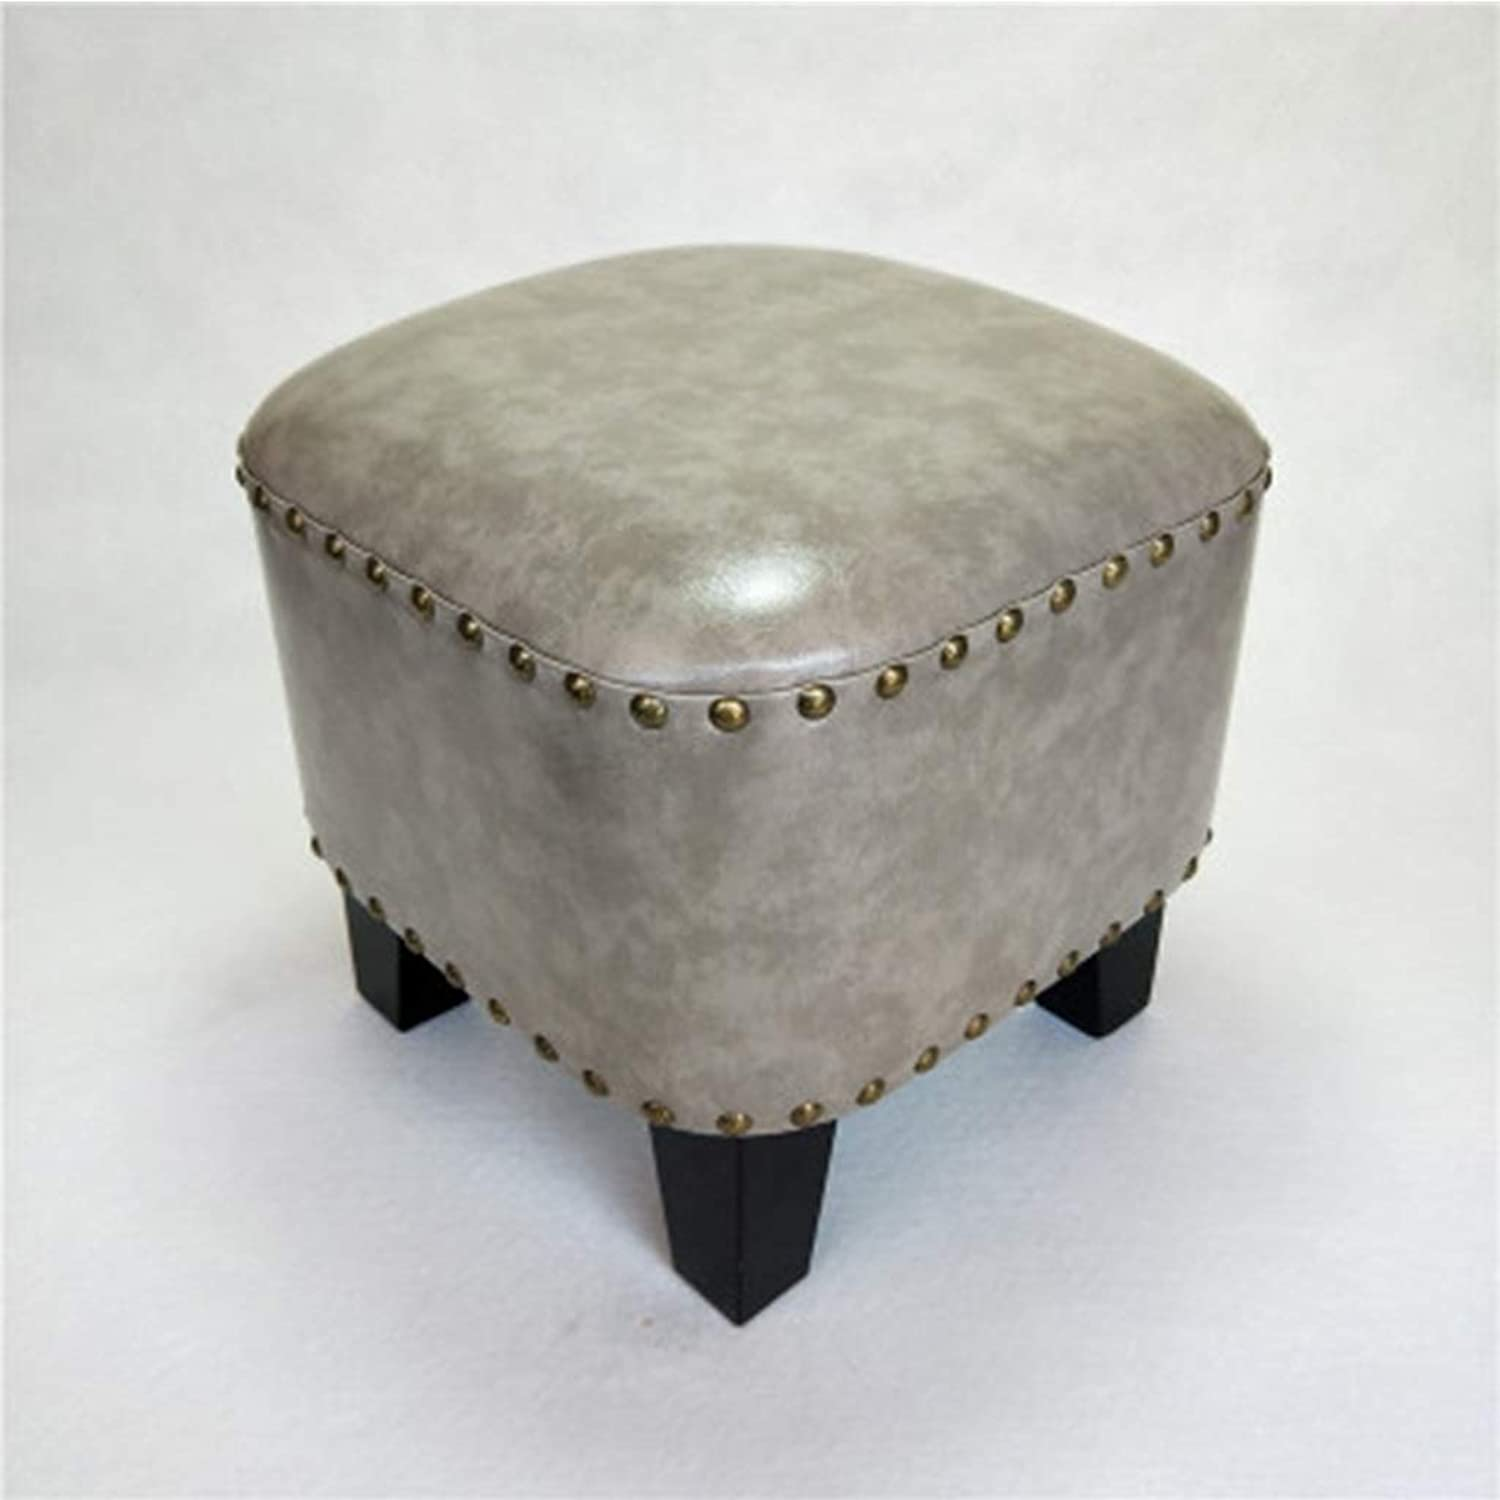 ZHBWJSH Low Stool Fashion Creative American Sofa Leather Pier shoes Bench Home Small Stool Living Room shoes Bench Seat (color   D)